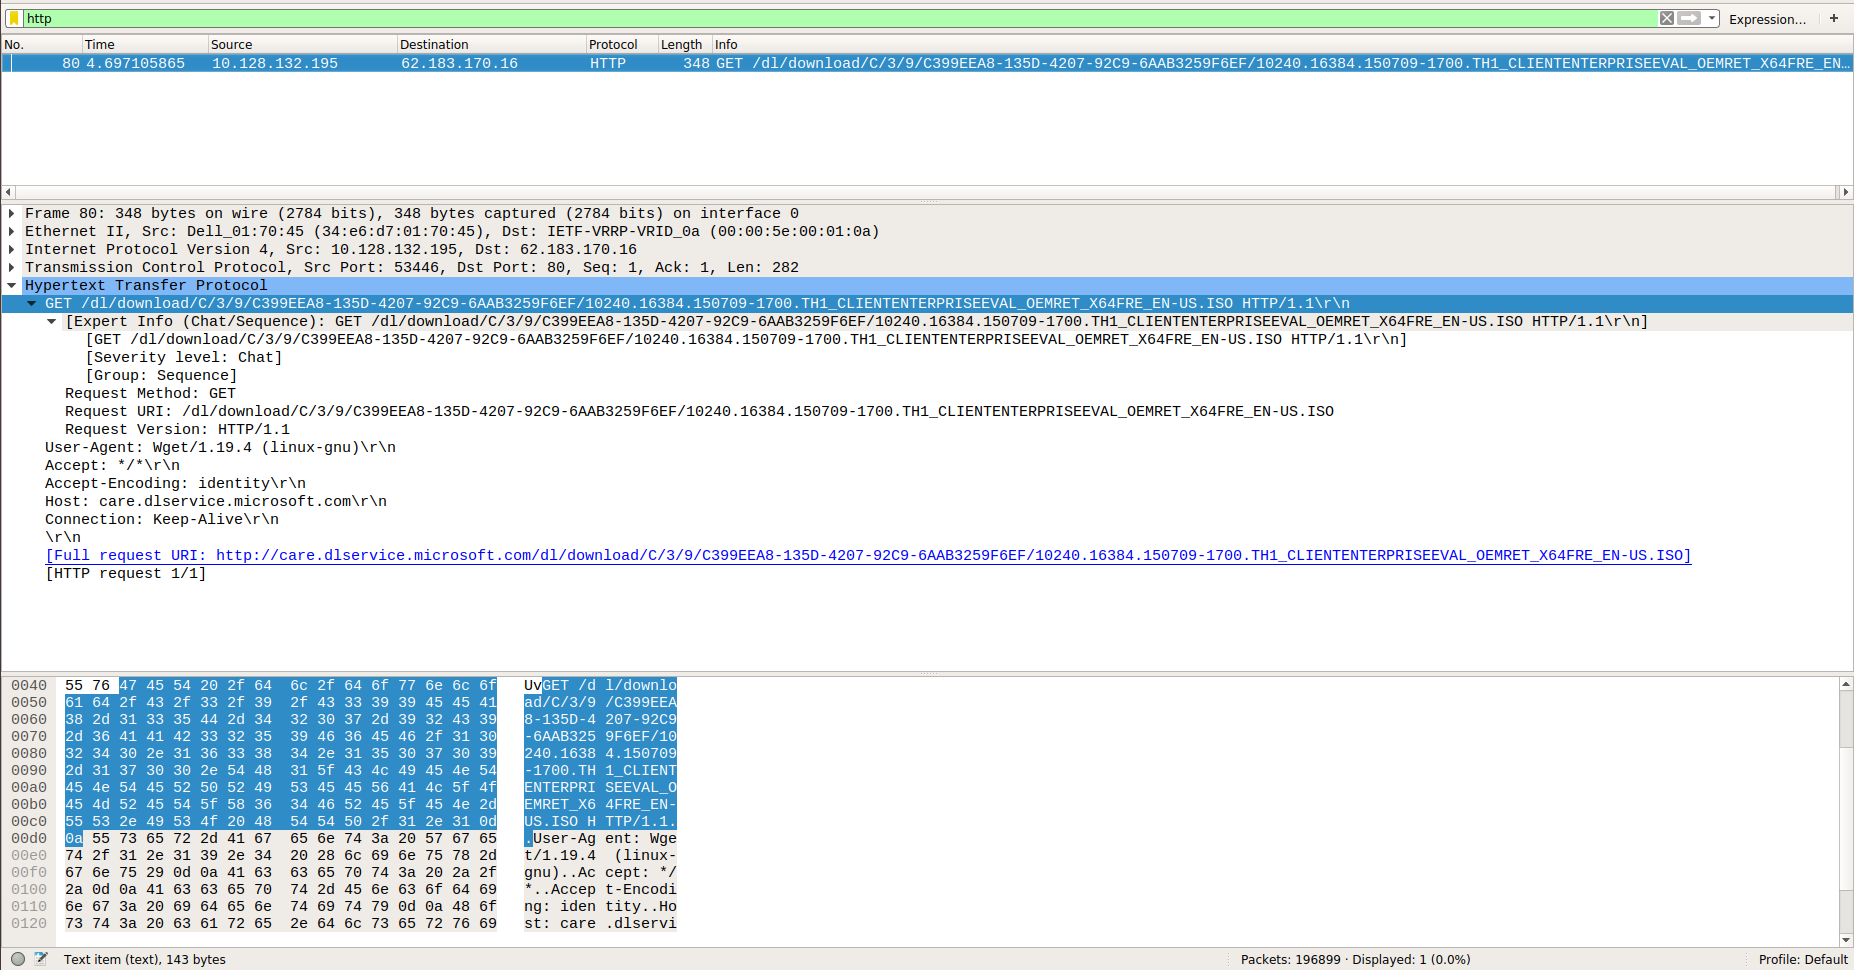 Packer download always fails with 502 Bad Gateway while wget works